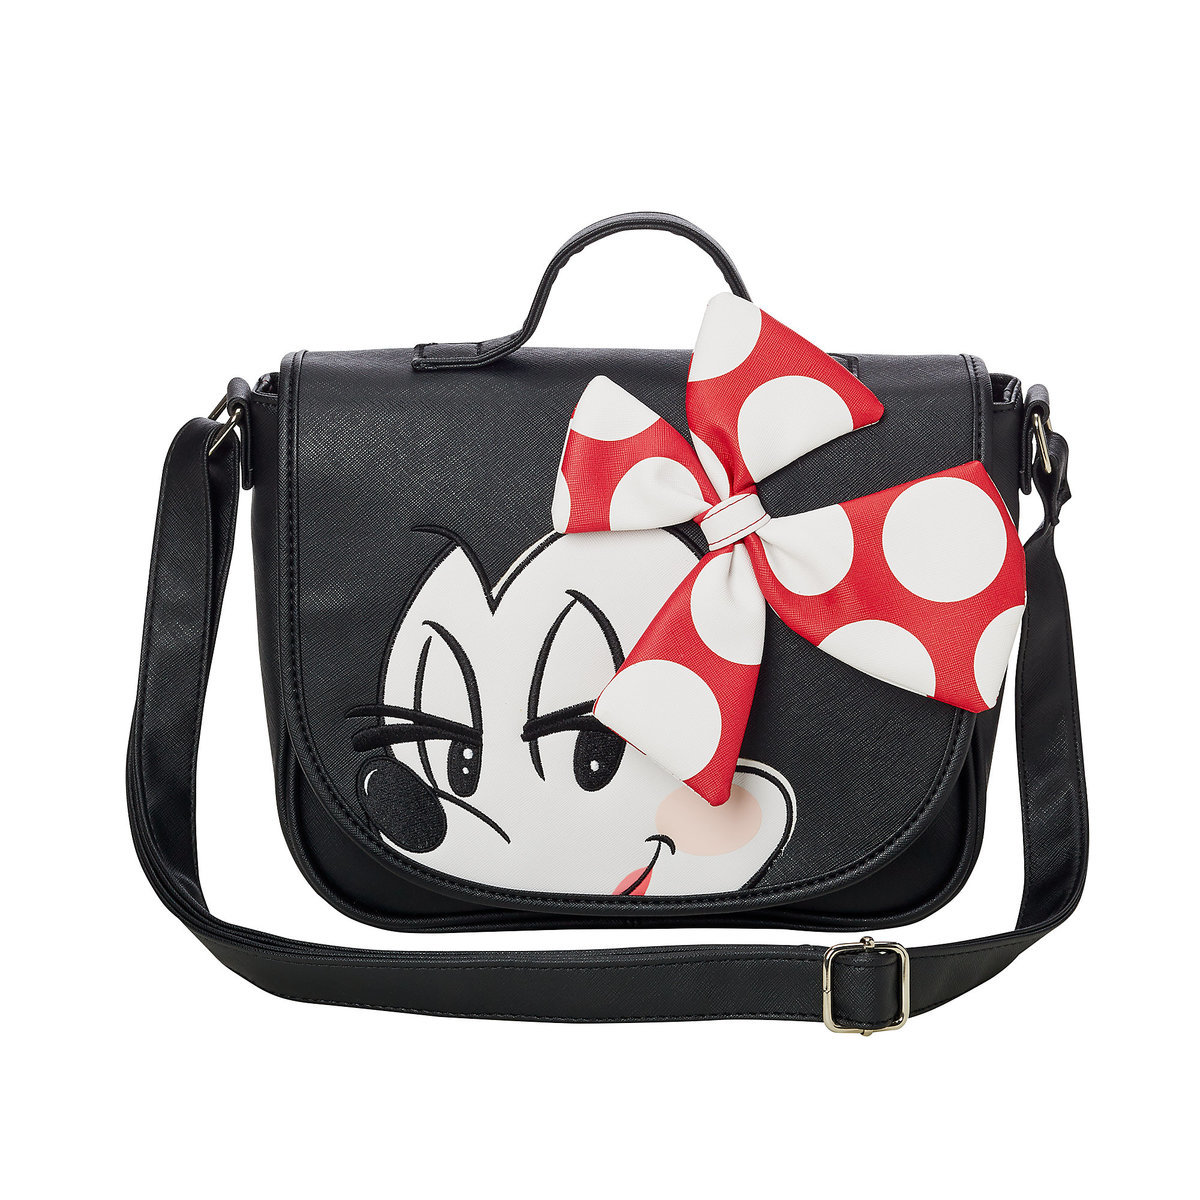 3eed8f2b09c Product Image of Minnie Mouse Crossbody Bag by Loungefly   1